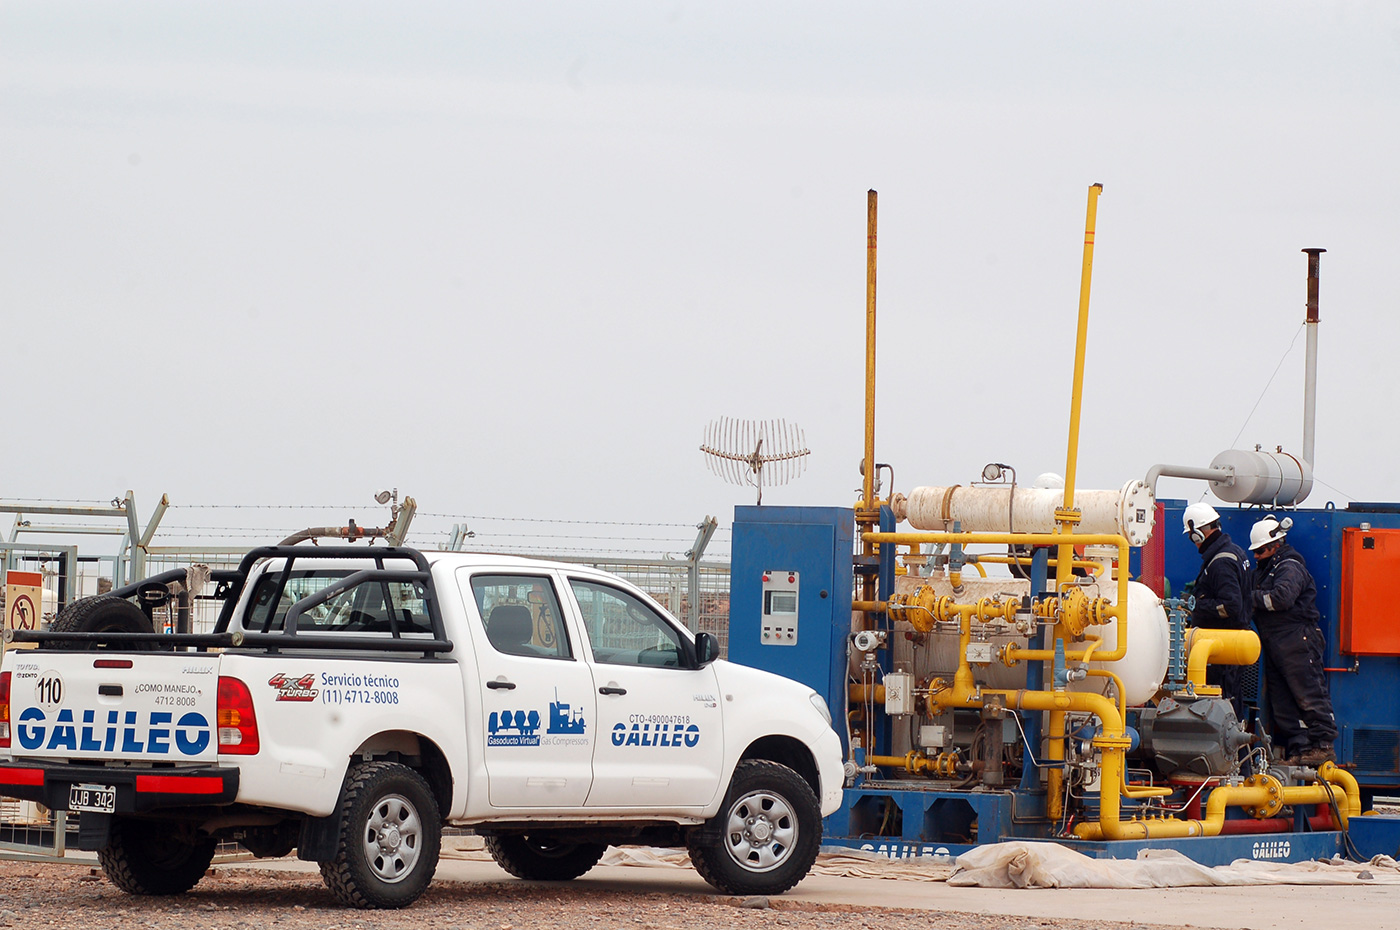 Galileo's Field Services personnel monitoring performance of Galileo Process™ compressors in a mature well operated by YPF (Yacimientos Petroliferos Fiscales) in Loma de la Lata, Argentina.